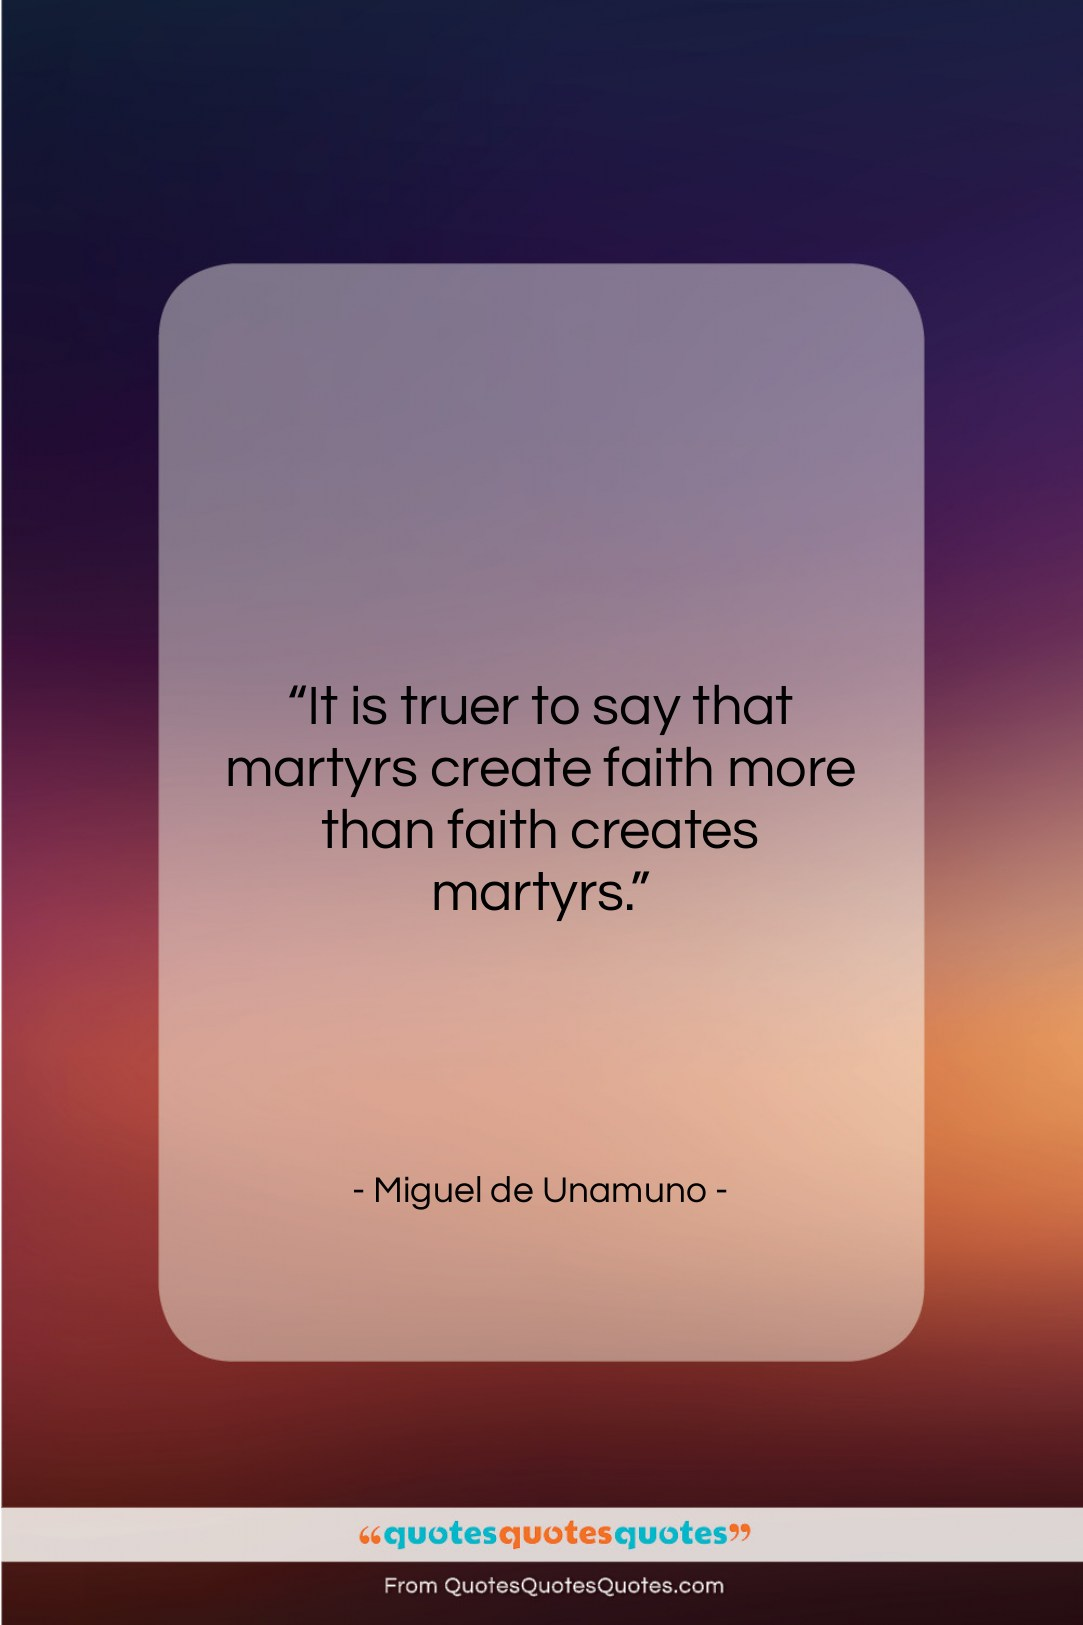 """Miguel de Unamuno quote: """"It is truer to say that martyrs…""""- at QuotesQuotesQuotes.com"""